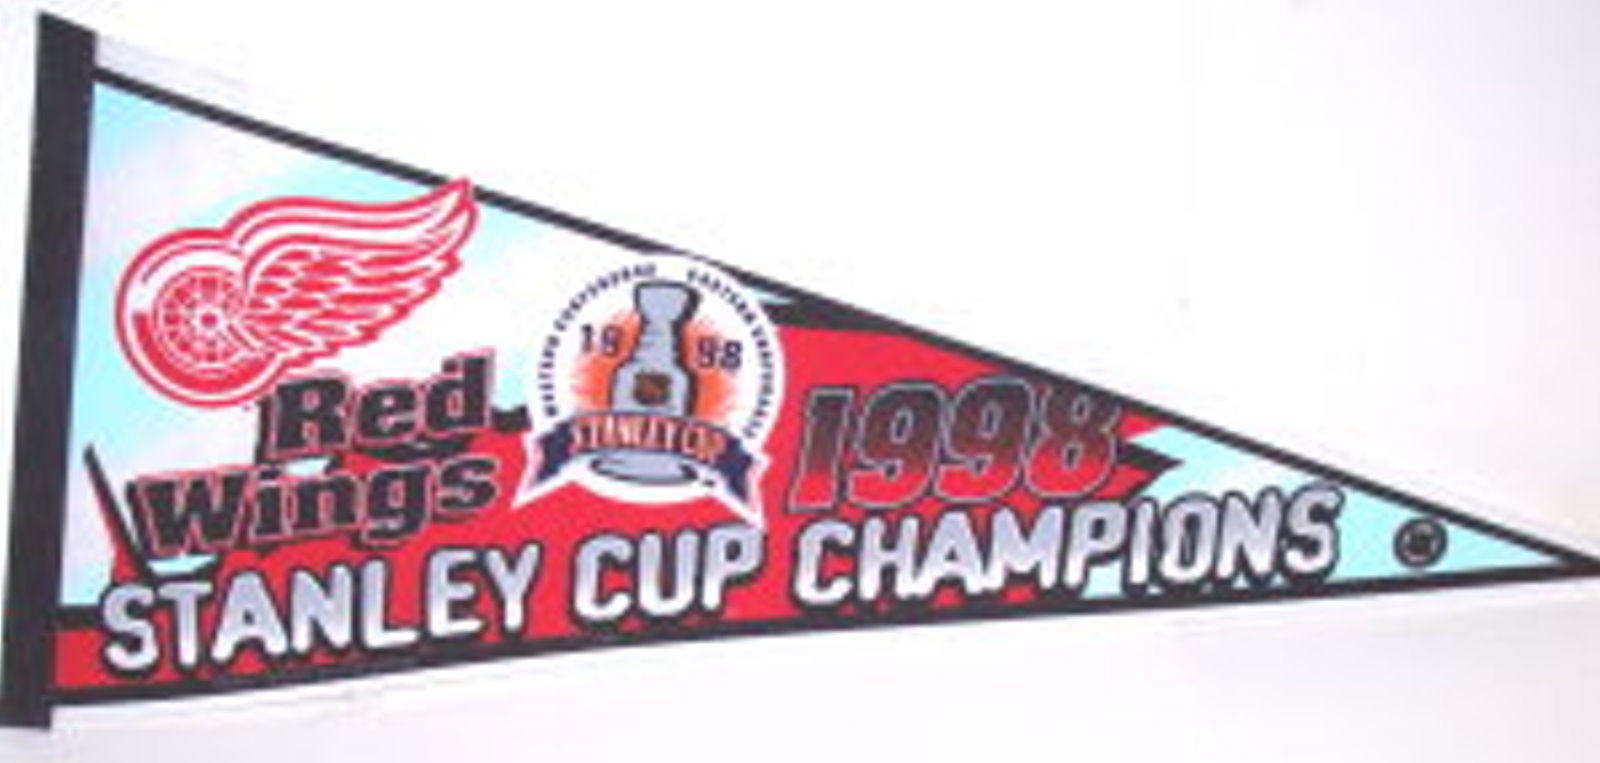 Detroit Red Wings 1998 Stanley Cup Champions Pennant